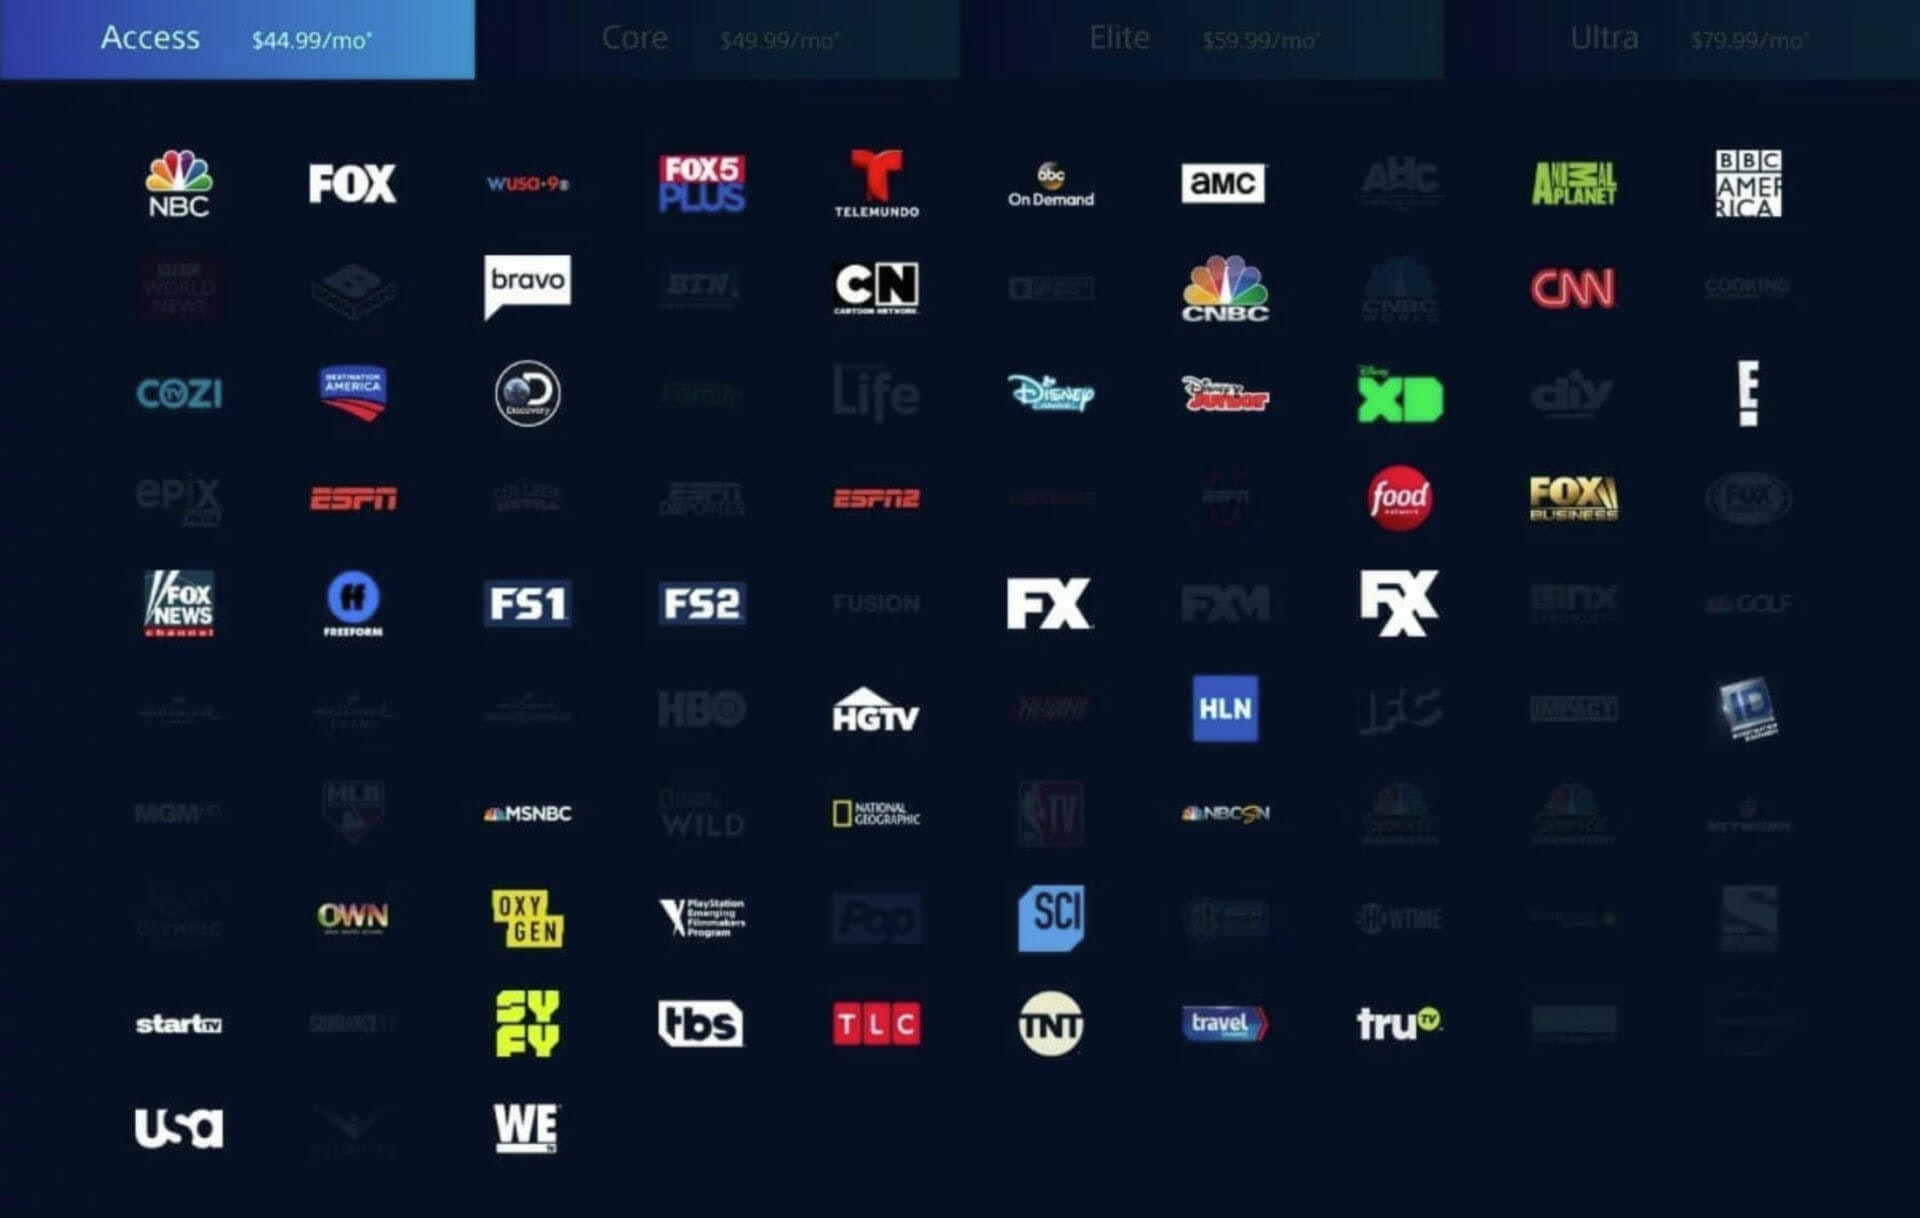 playstation vue nfl afc cbs streaming